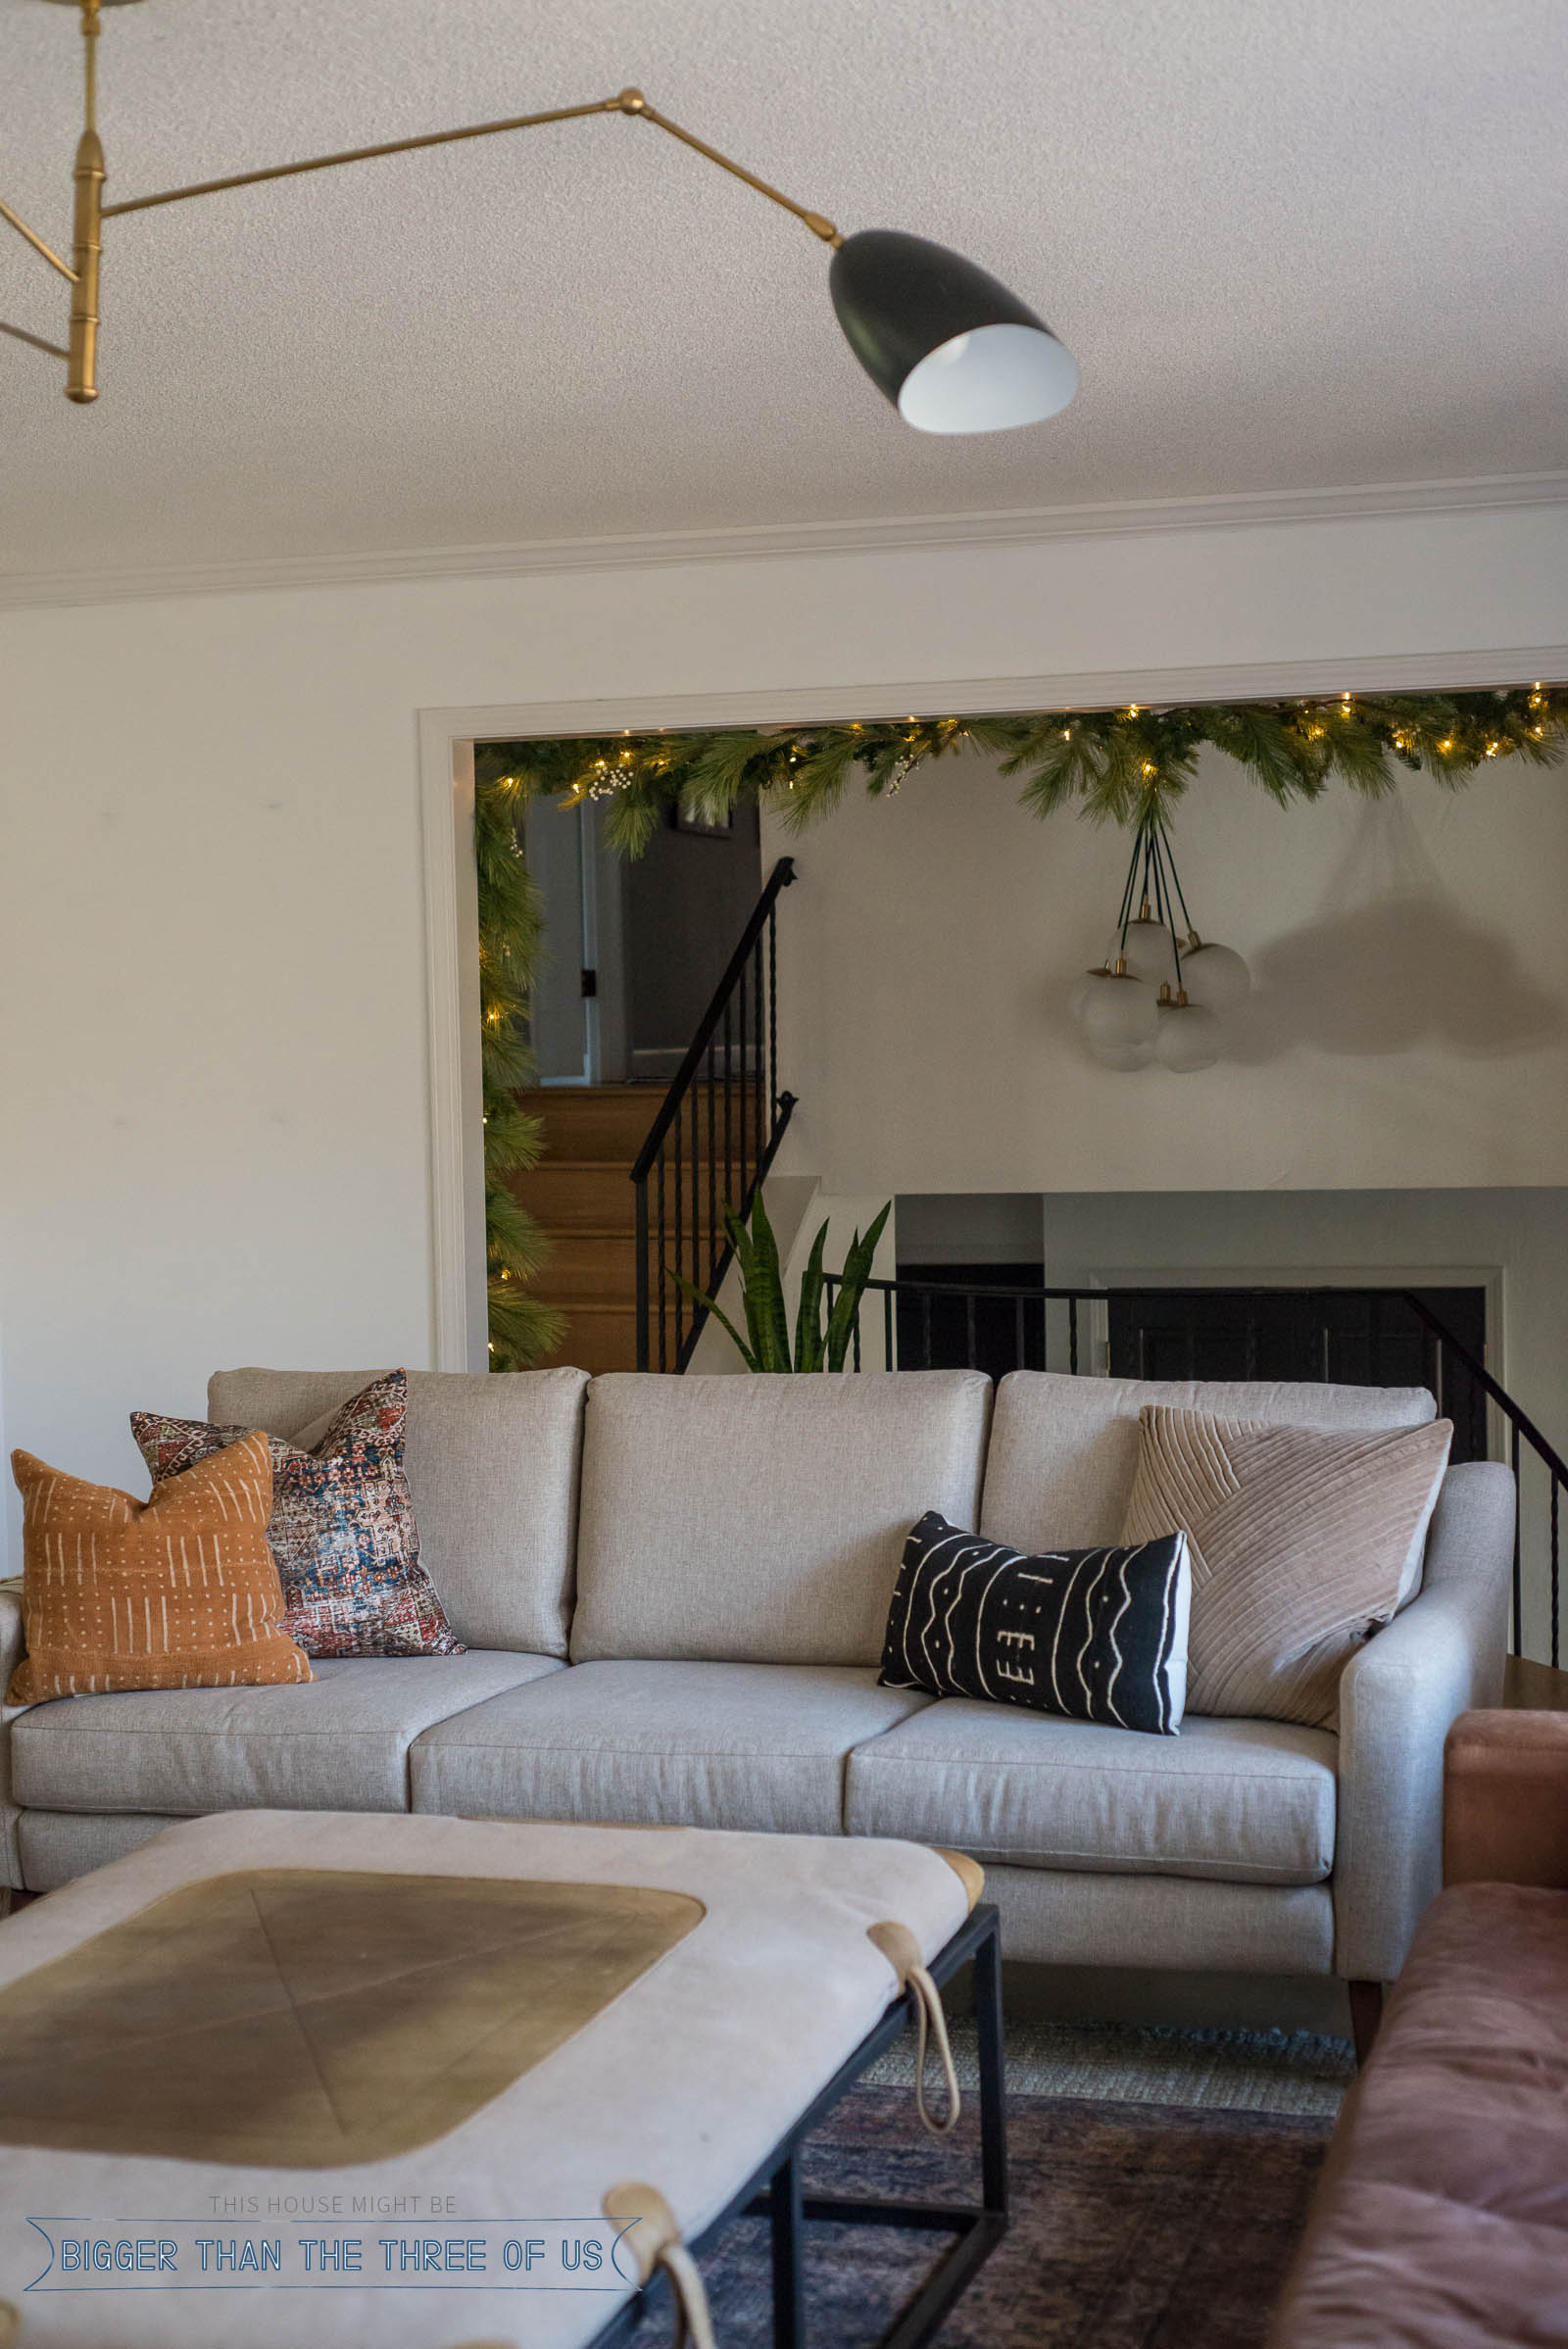 Gray couch in living room with garland strung over doorway behind it.